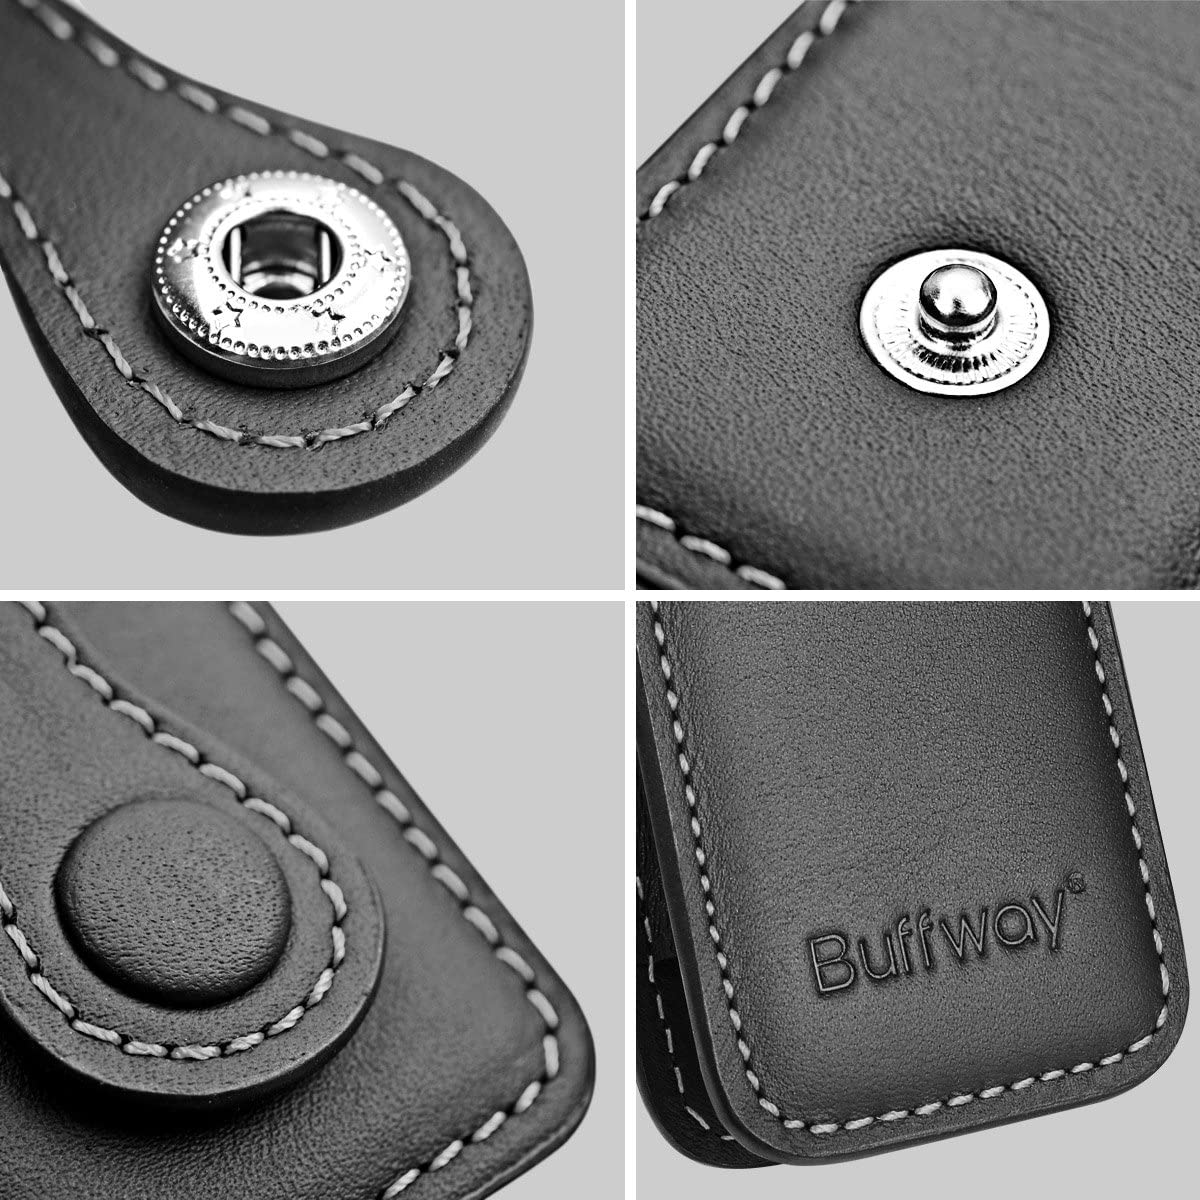 Grey Line Buffway Key Chain Case Cover Holder Shell for Porsche Cayenne Panamera Macan Key Fob with Luxury Genuine Leather